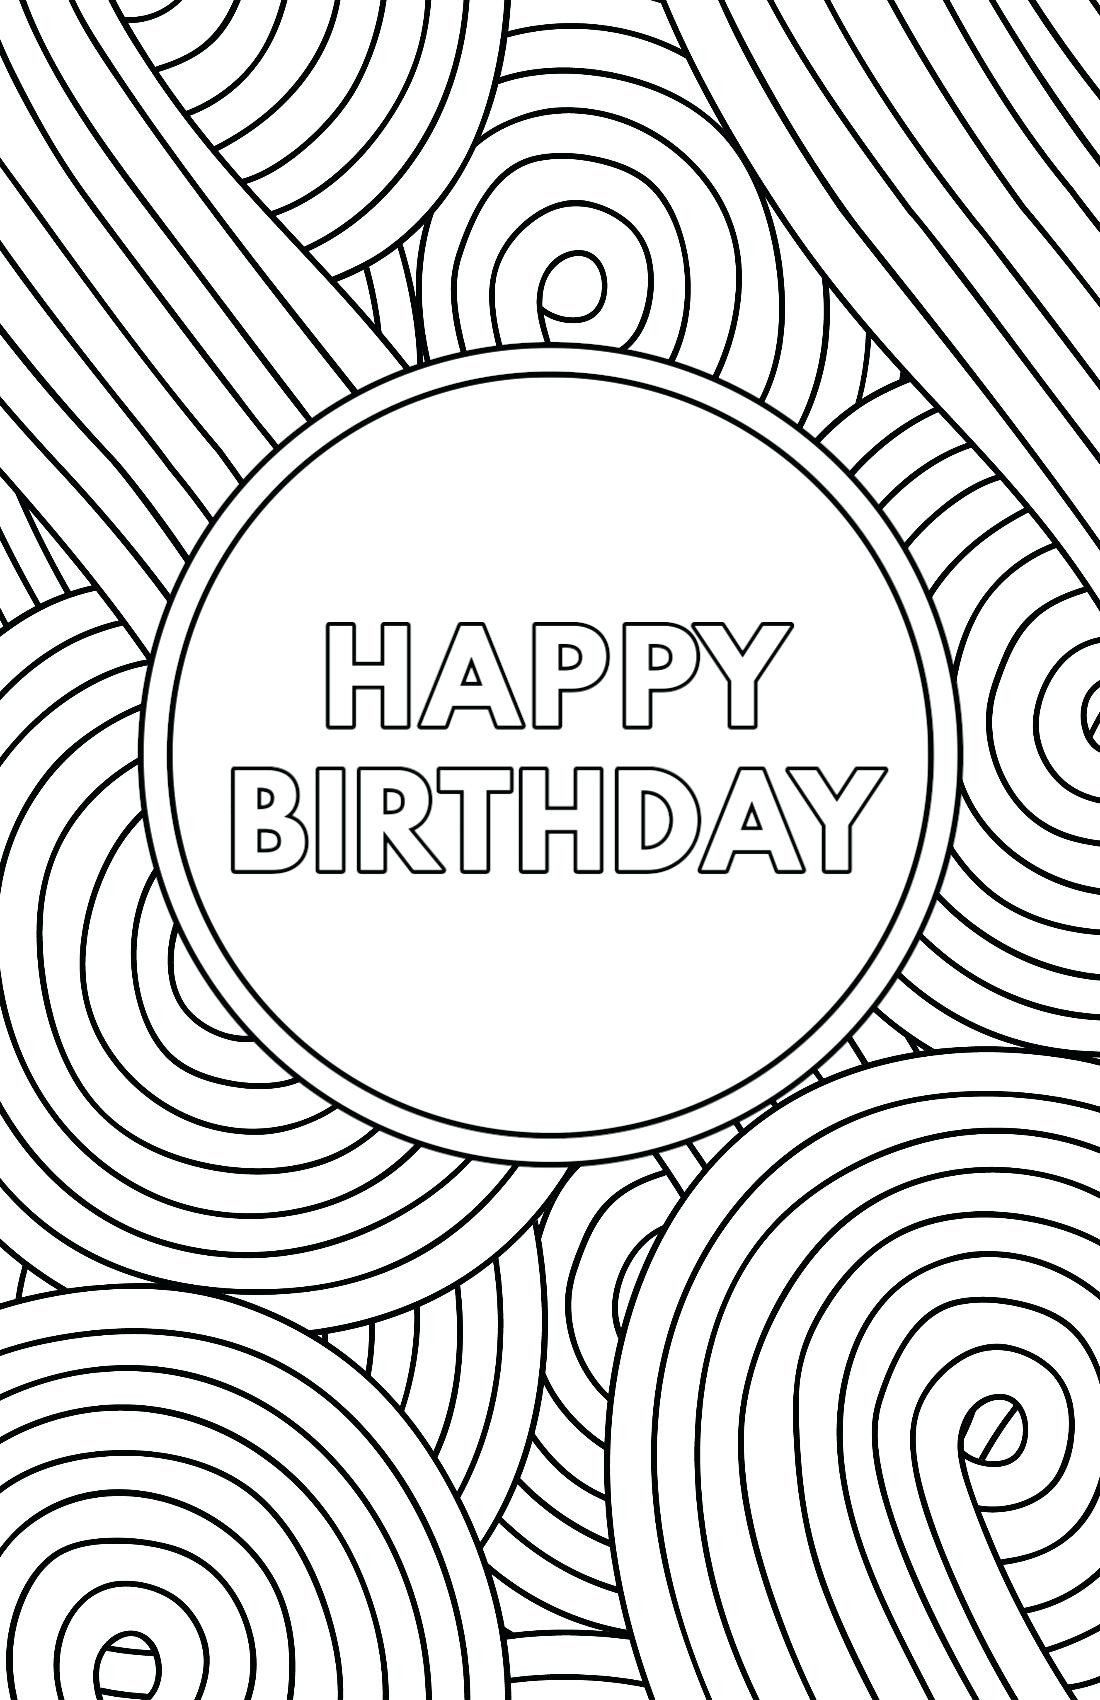 Happy Birthday Cards Coloring Pages Coloring Coloring Book Printable Color In 2020 Free Printable Birthday Cards Happy Birthday Cards Printable Coloring Birthday Cards